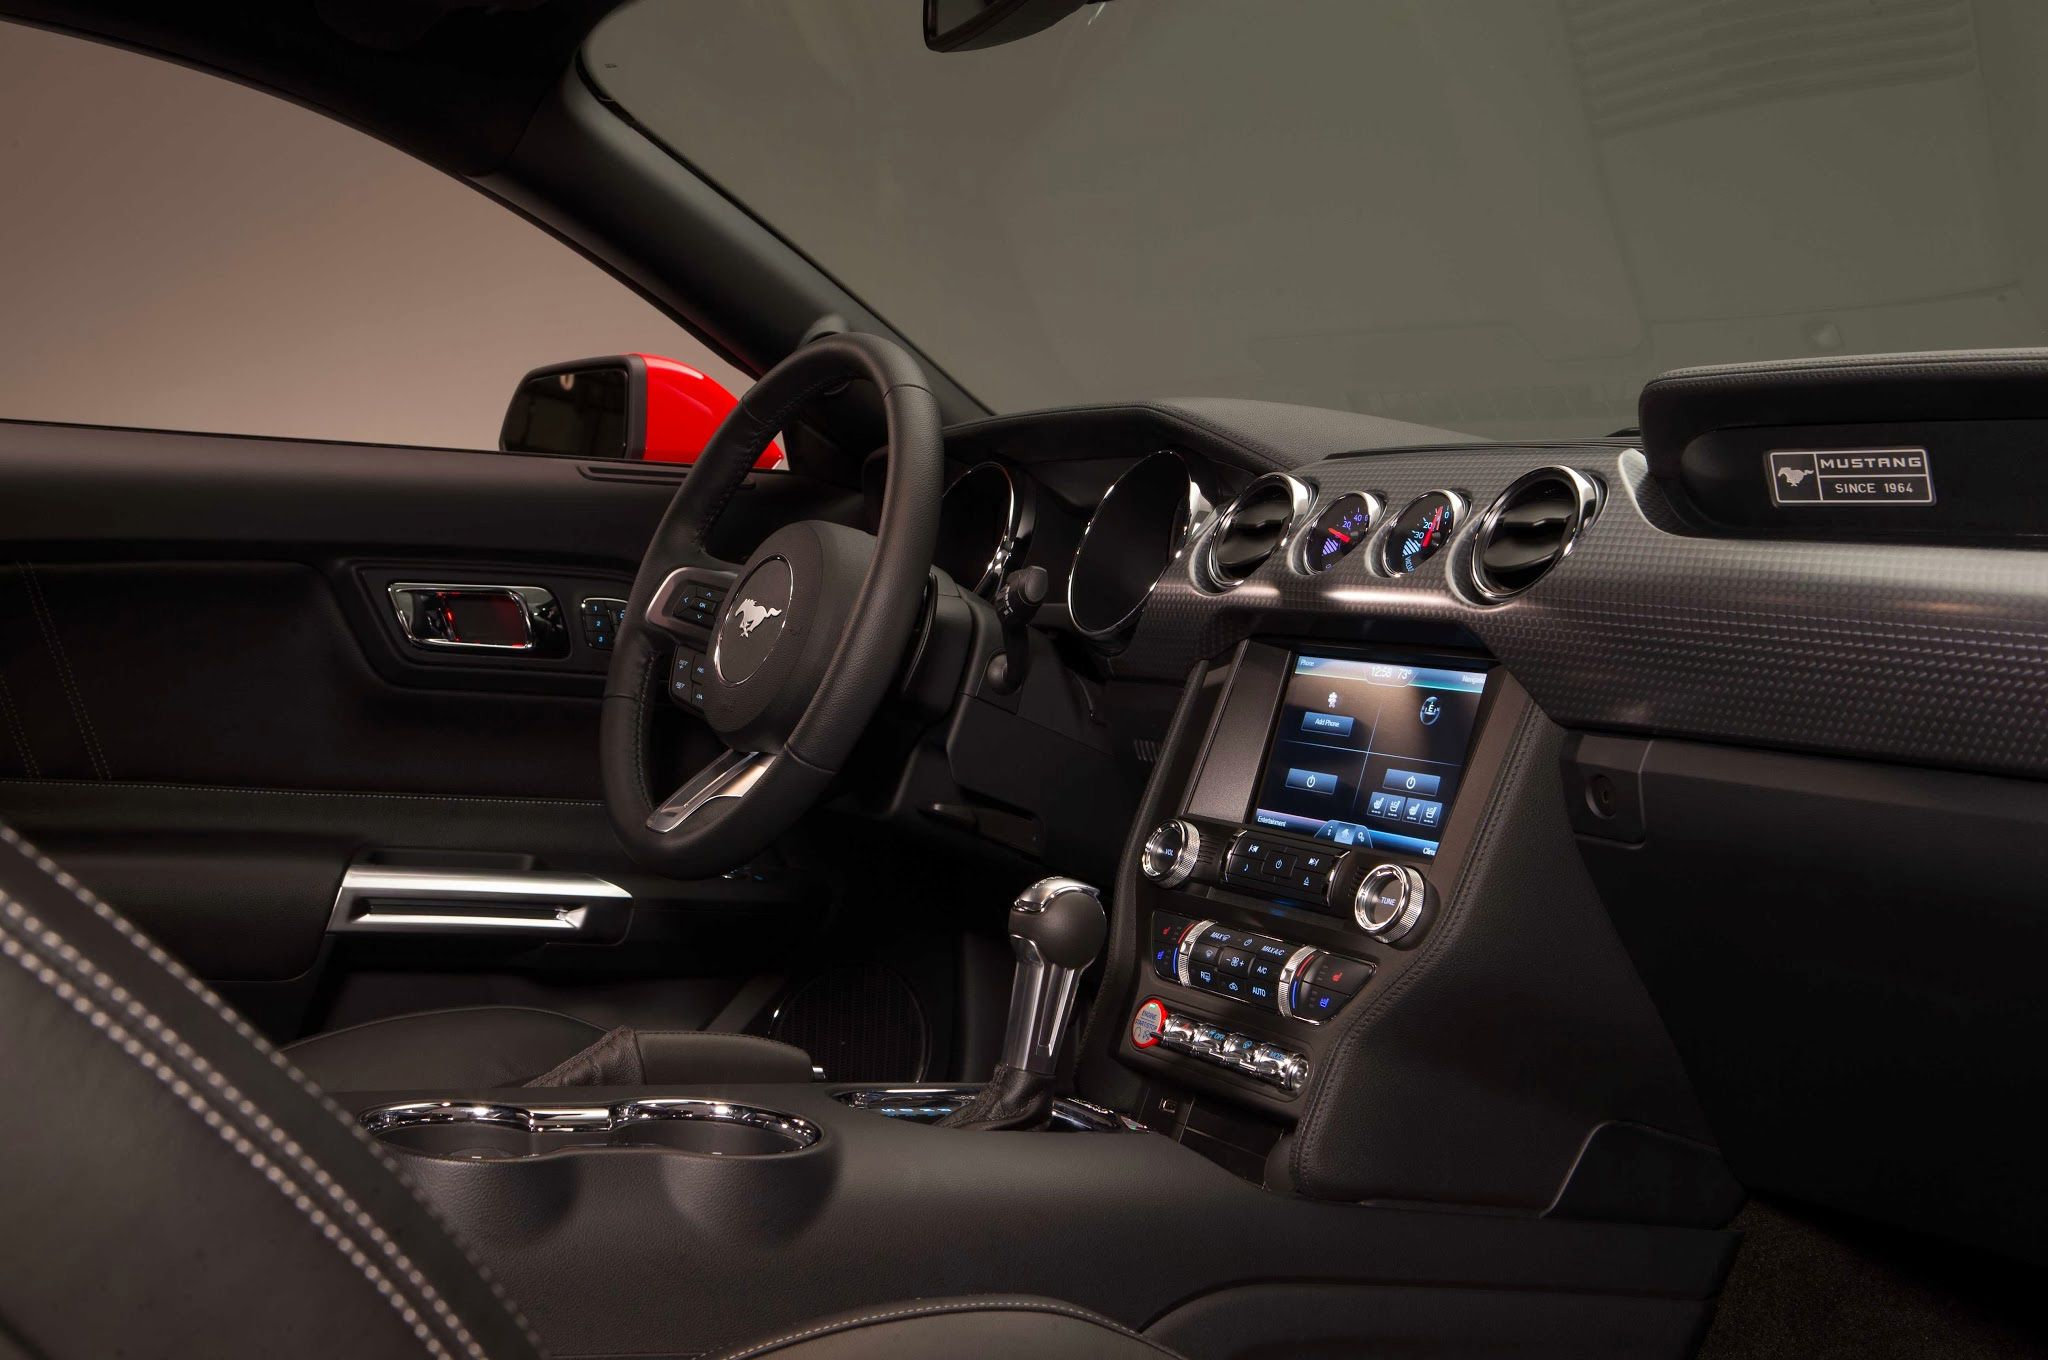 2015 ford mustang 5 0 red interior from passenger side